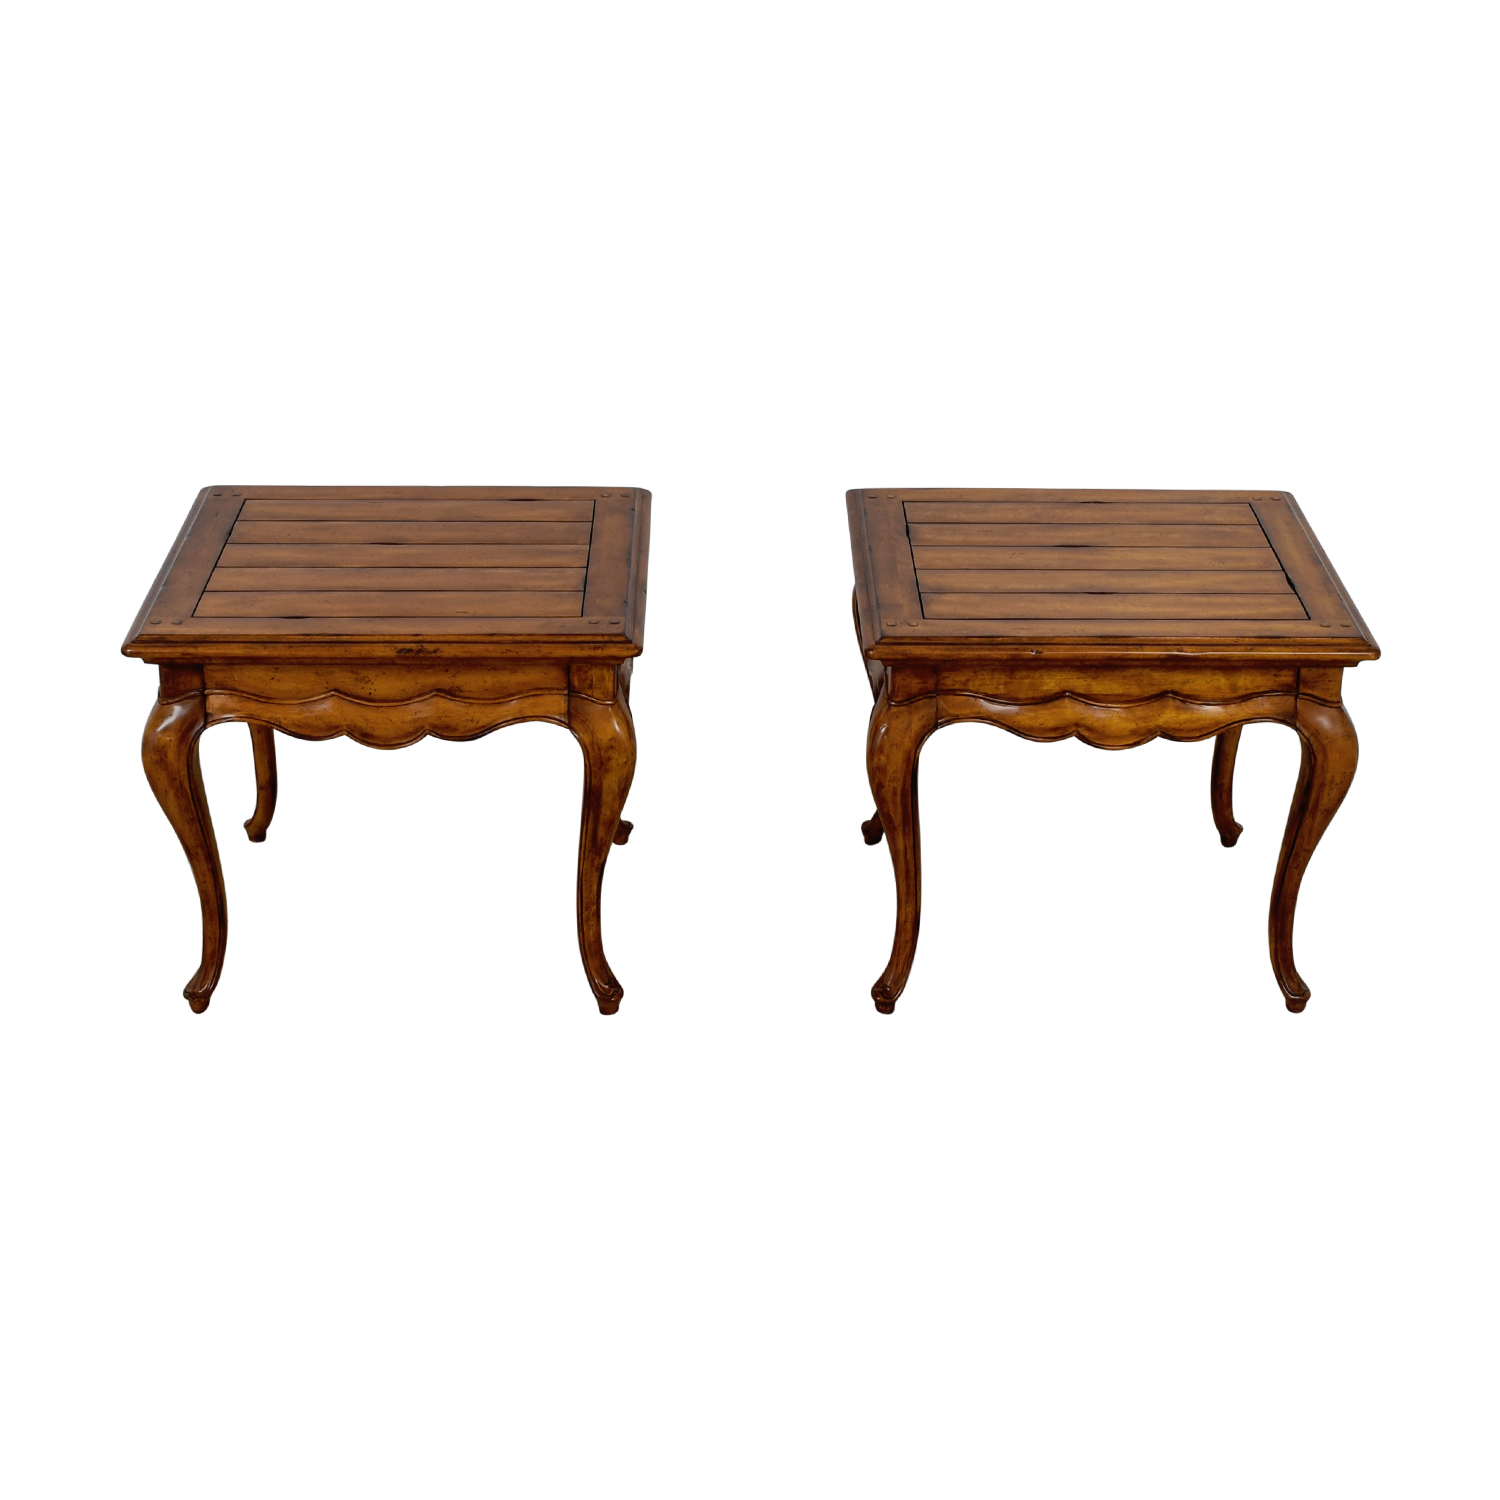 buy Thomasville Dovetailed Wood End Tables Thomasville Tables